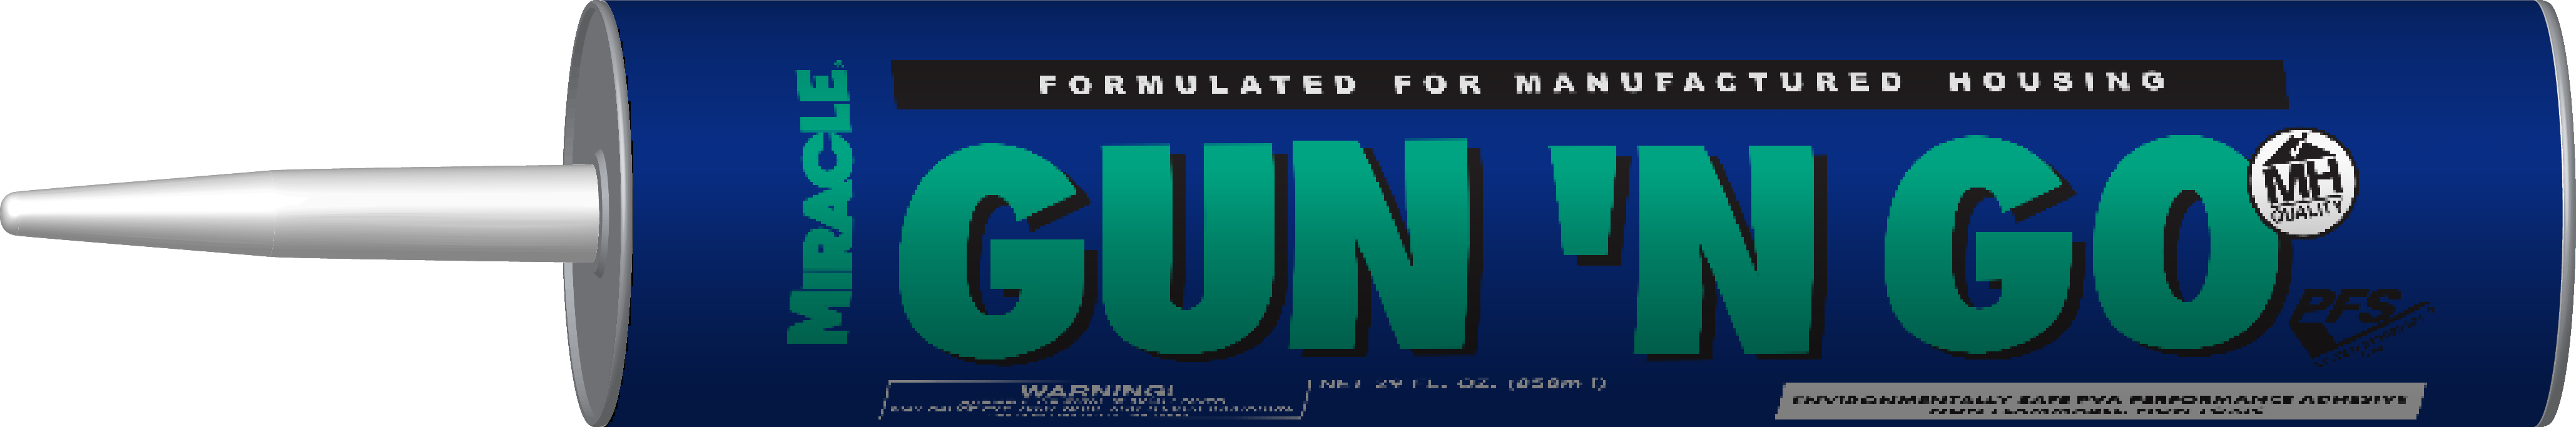 Gun N Go 28oz Cartridge 2016-04-11 [3D MOCKUP]